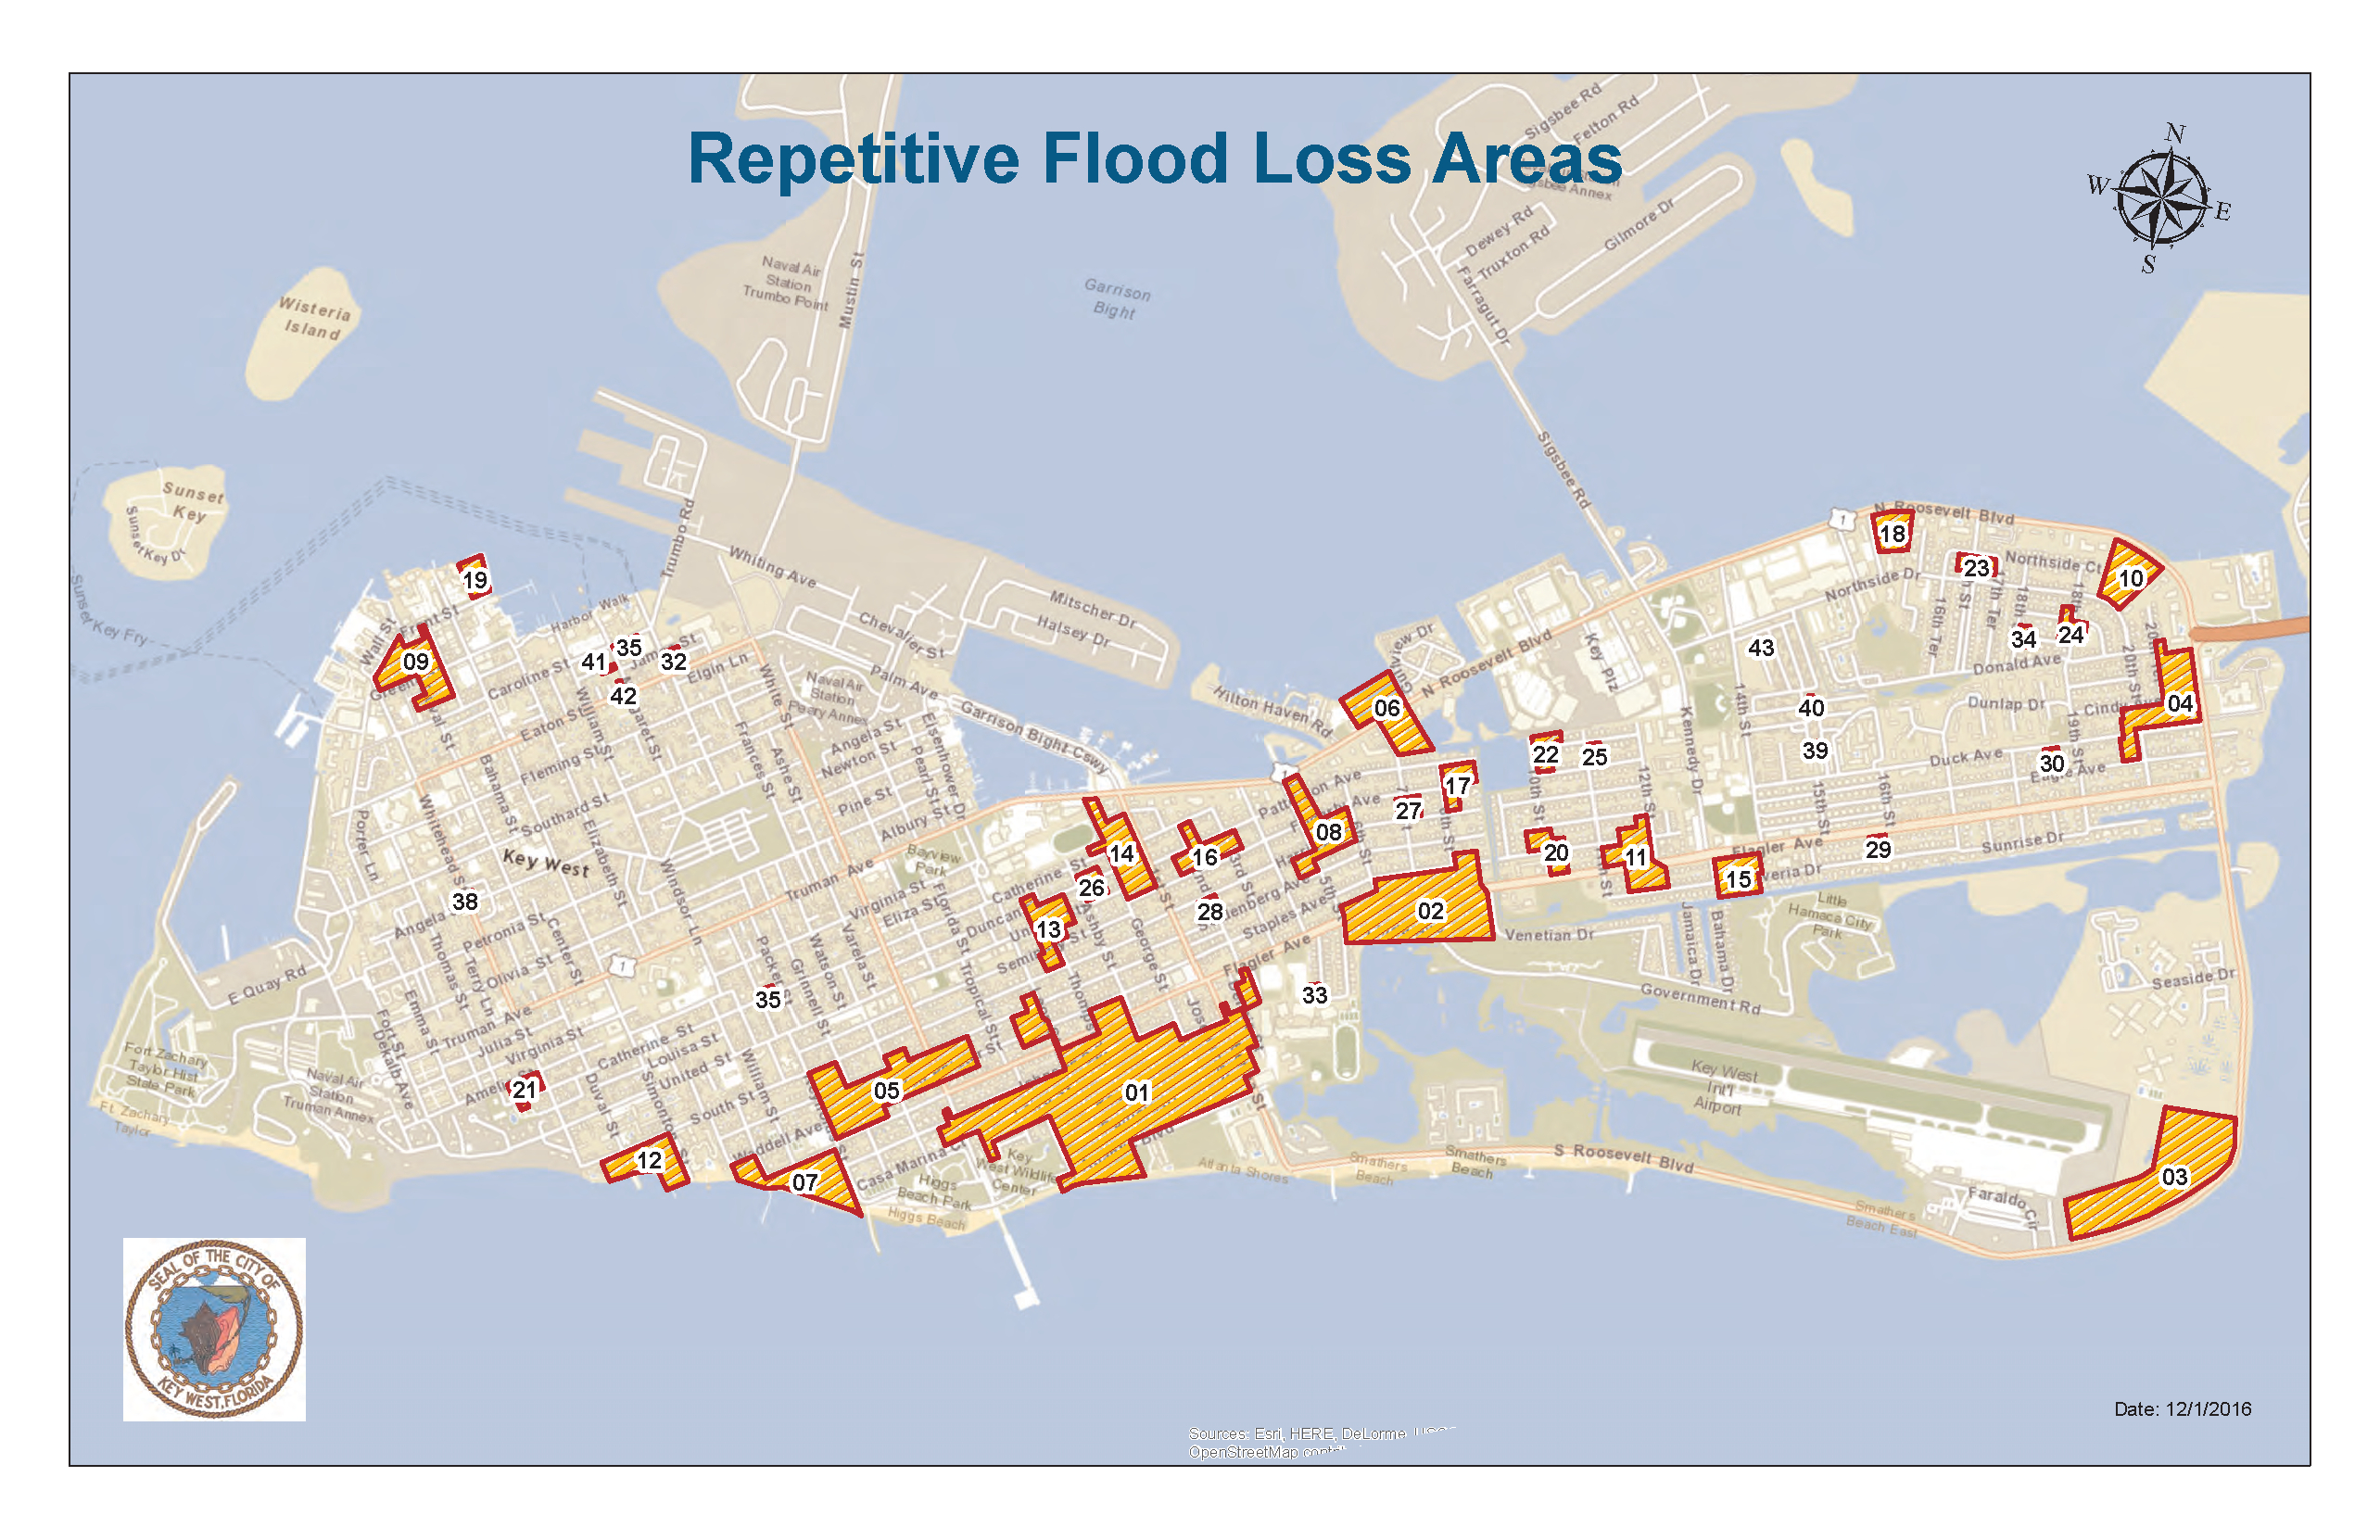 Key West, Fl / Historical Flooding - Florida Keys Flood Zone Map